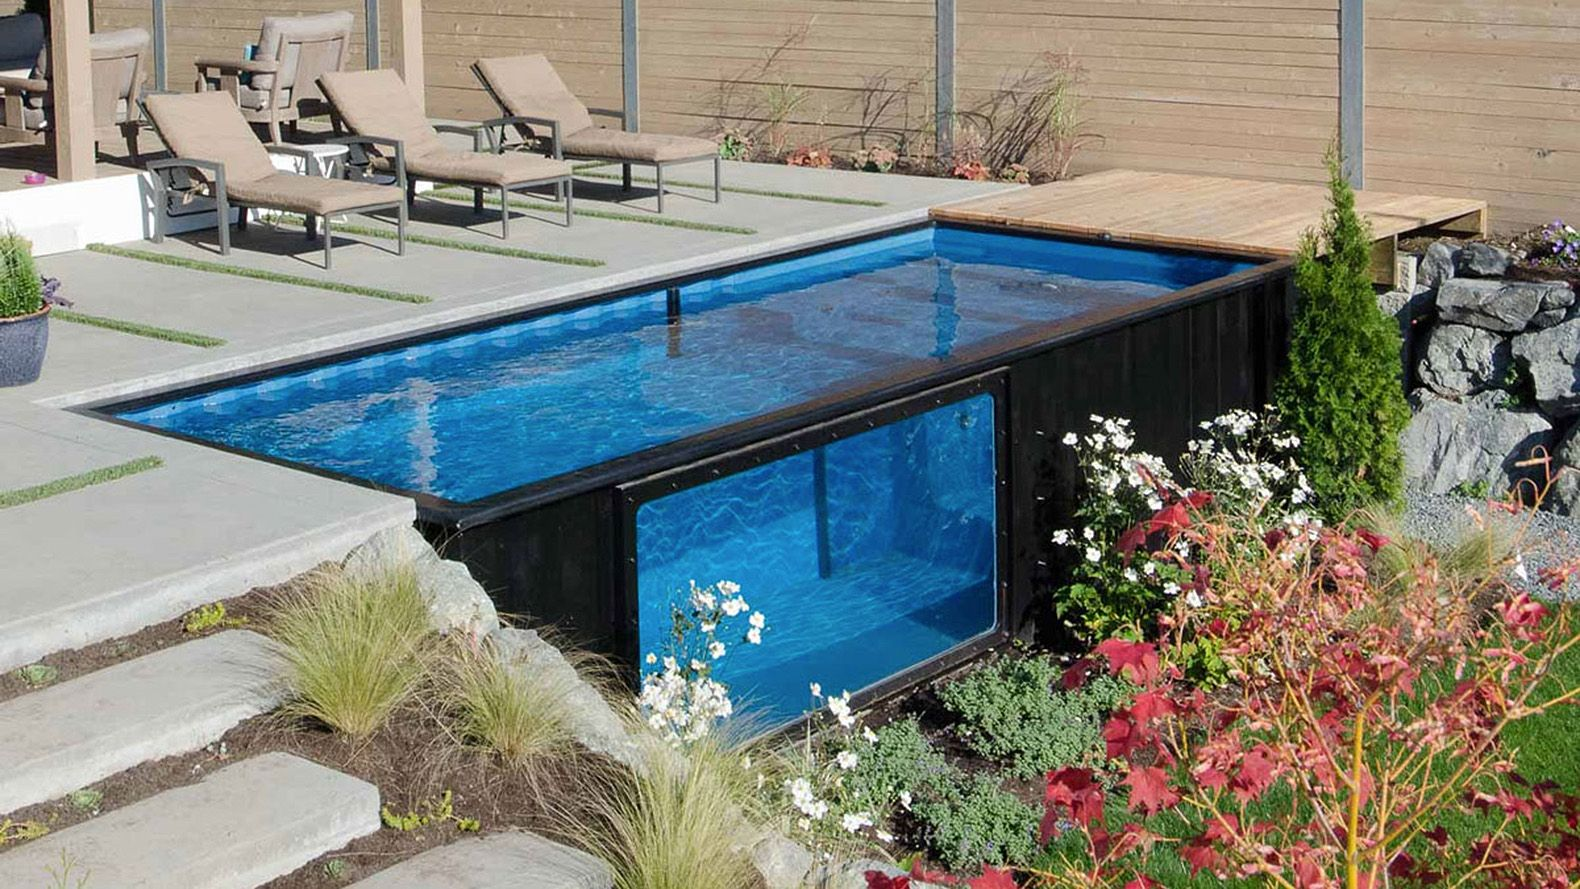 Modpools turns shipping containers into amazing swimming ...